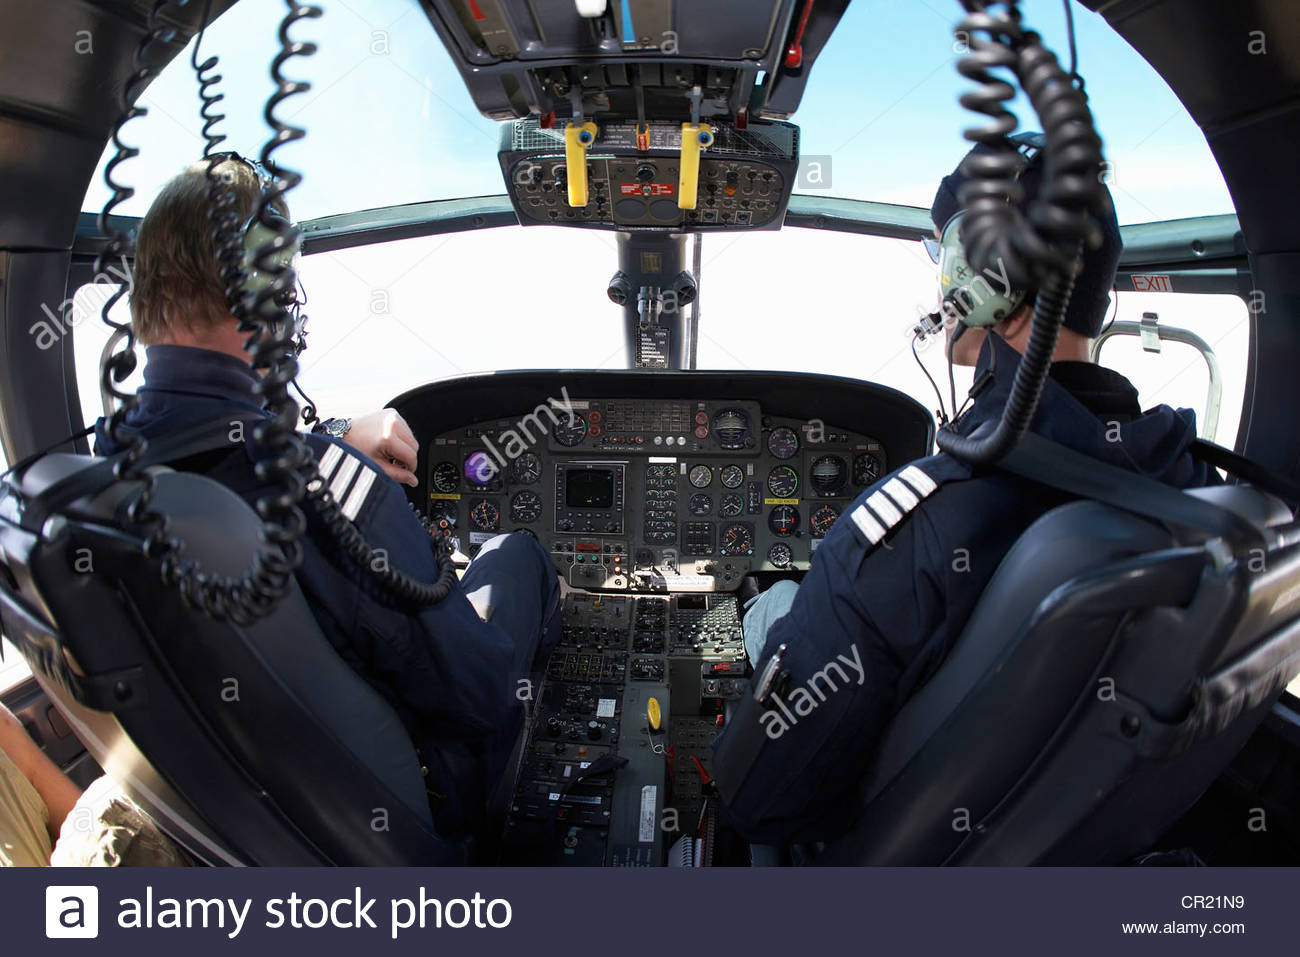 Helicopter pilots in cockpit - Stock Image